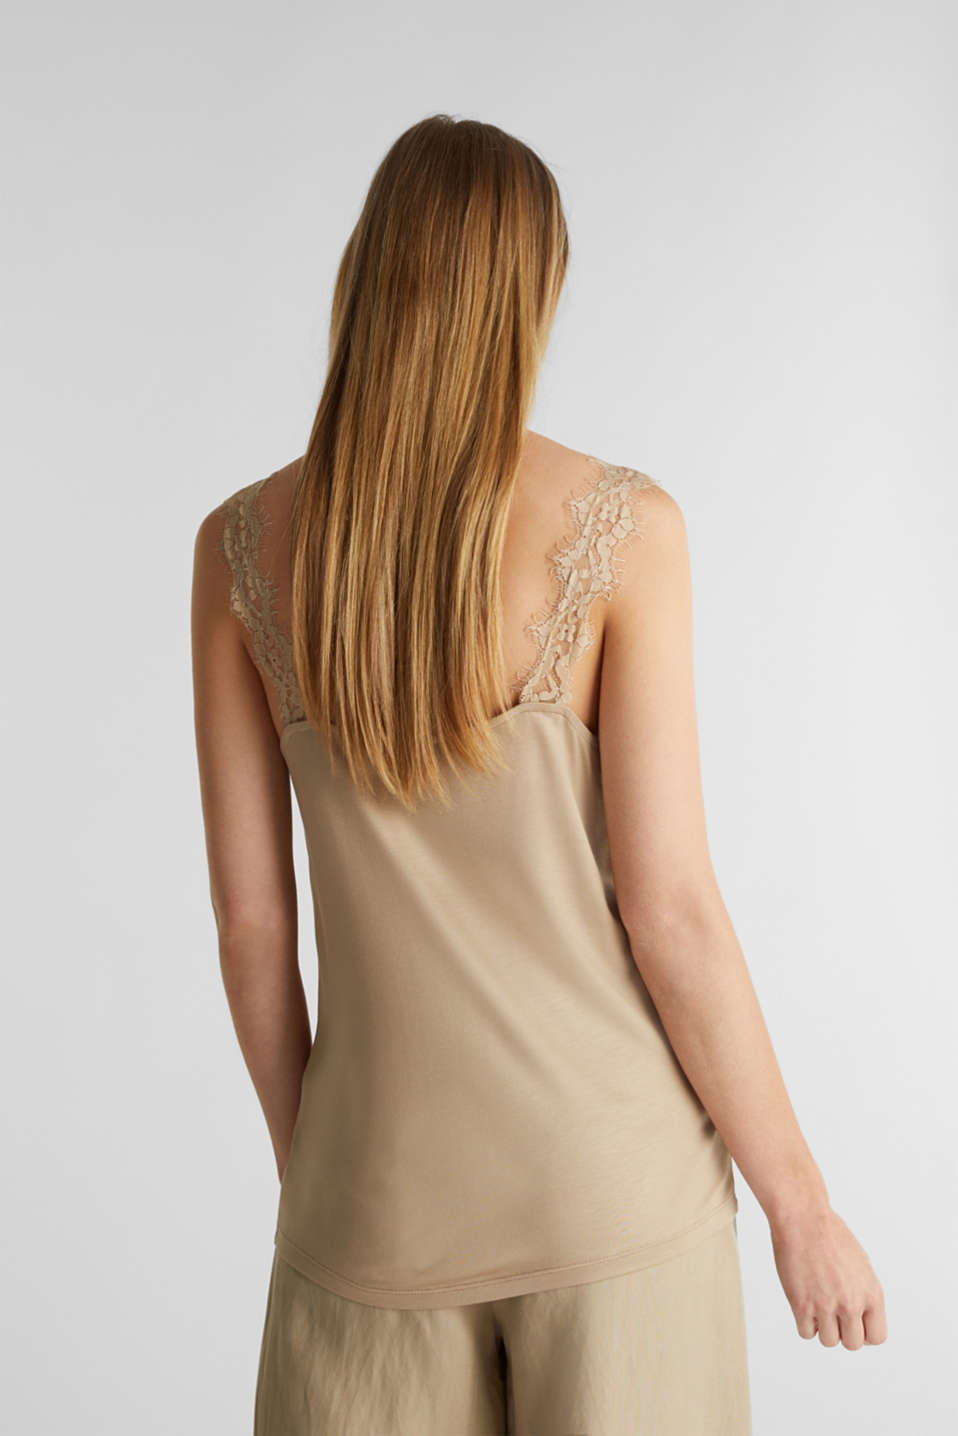 Jersey top with lace details, KHAKI BEIGE, detail image number 3